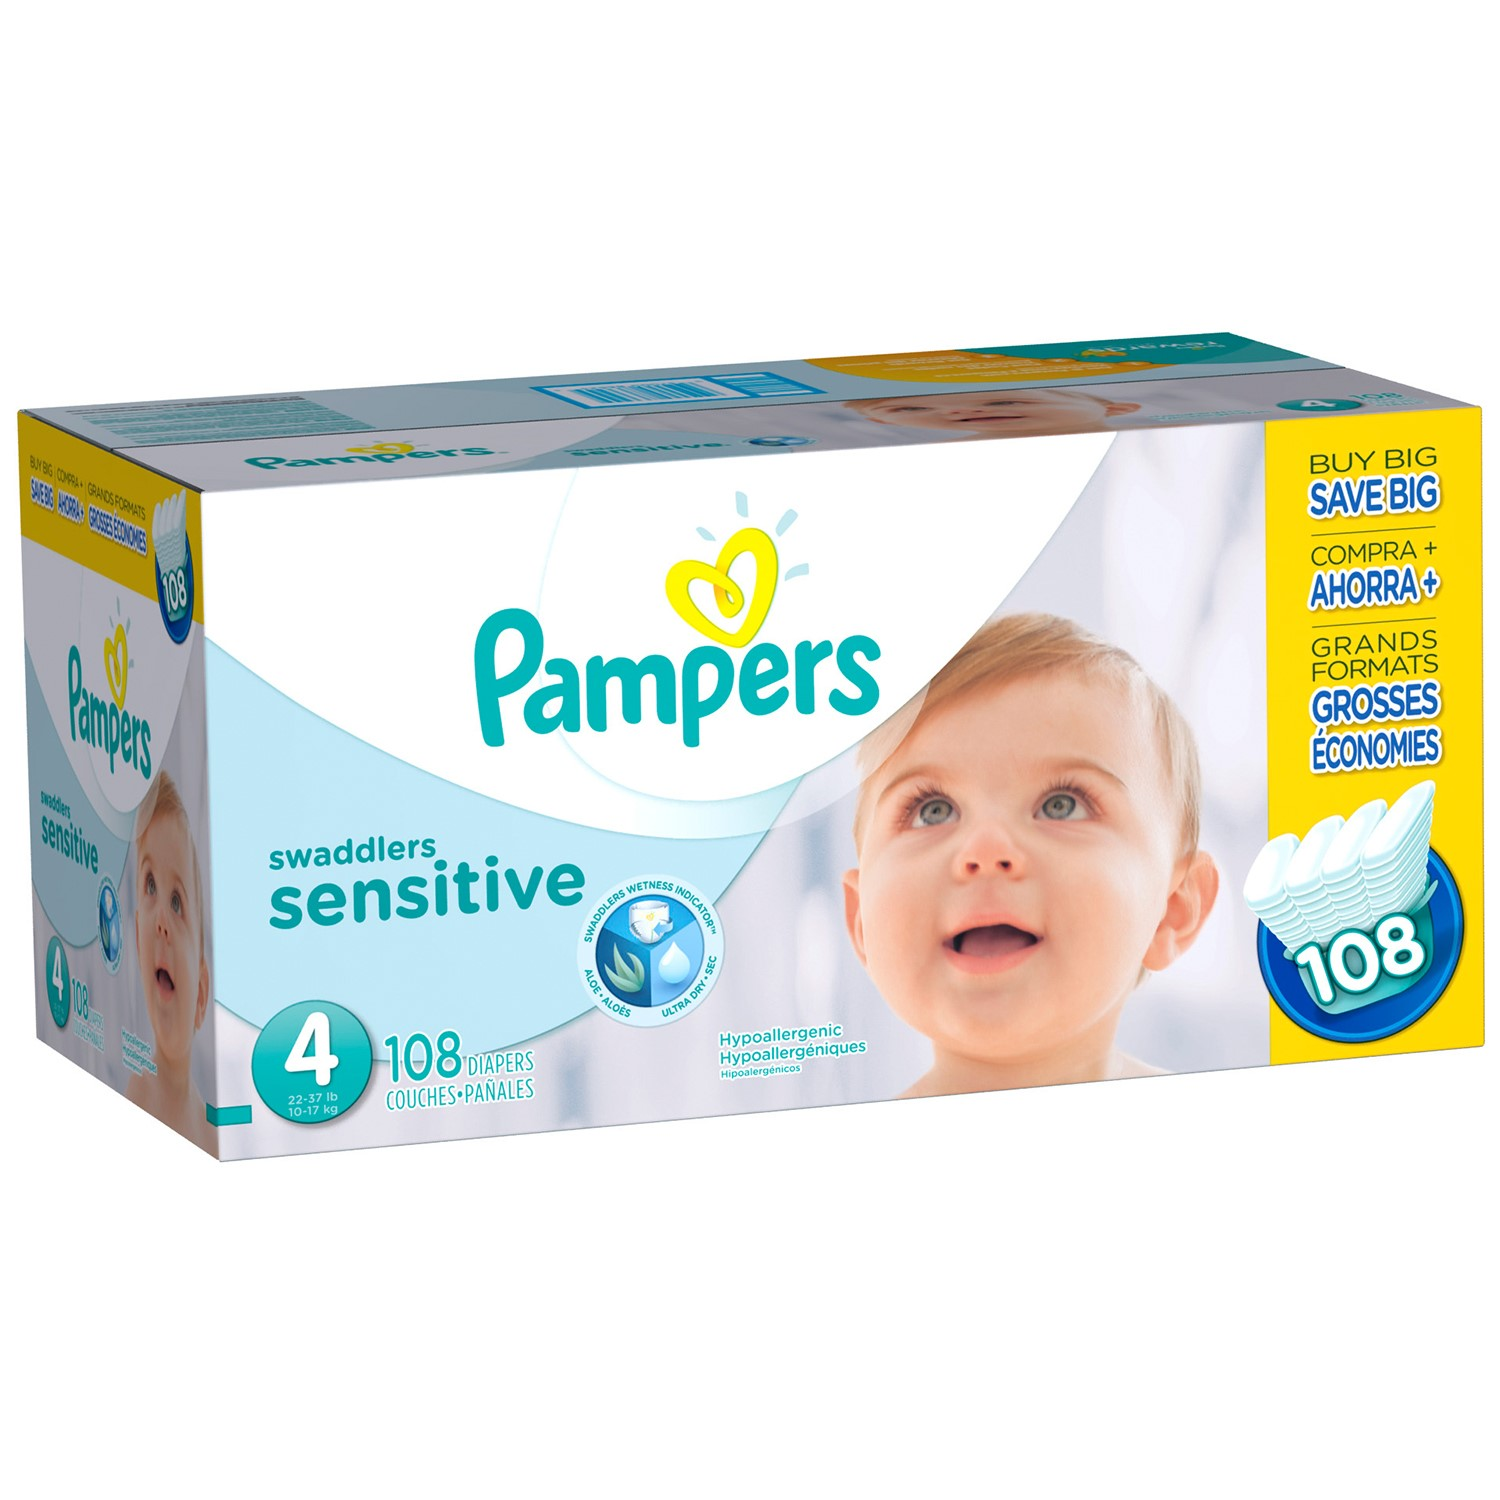 Pampers Swaddlers Sensitive Diapers, Super Economy Pack